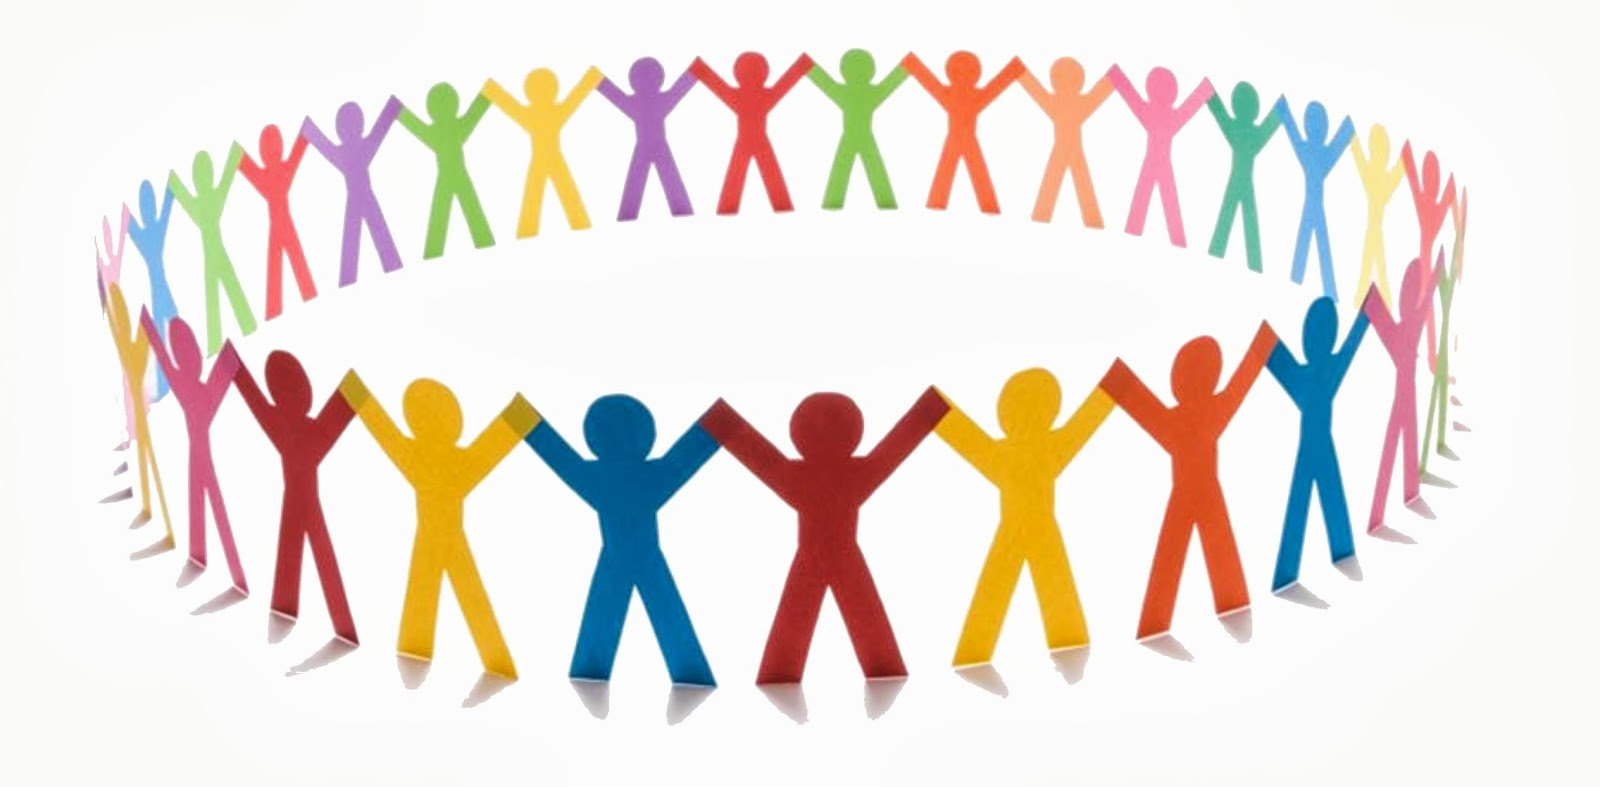 1600x787 Community Clipart Unity Pencil And In Colormunity